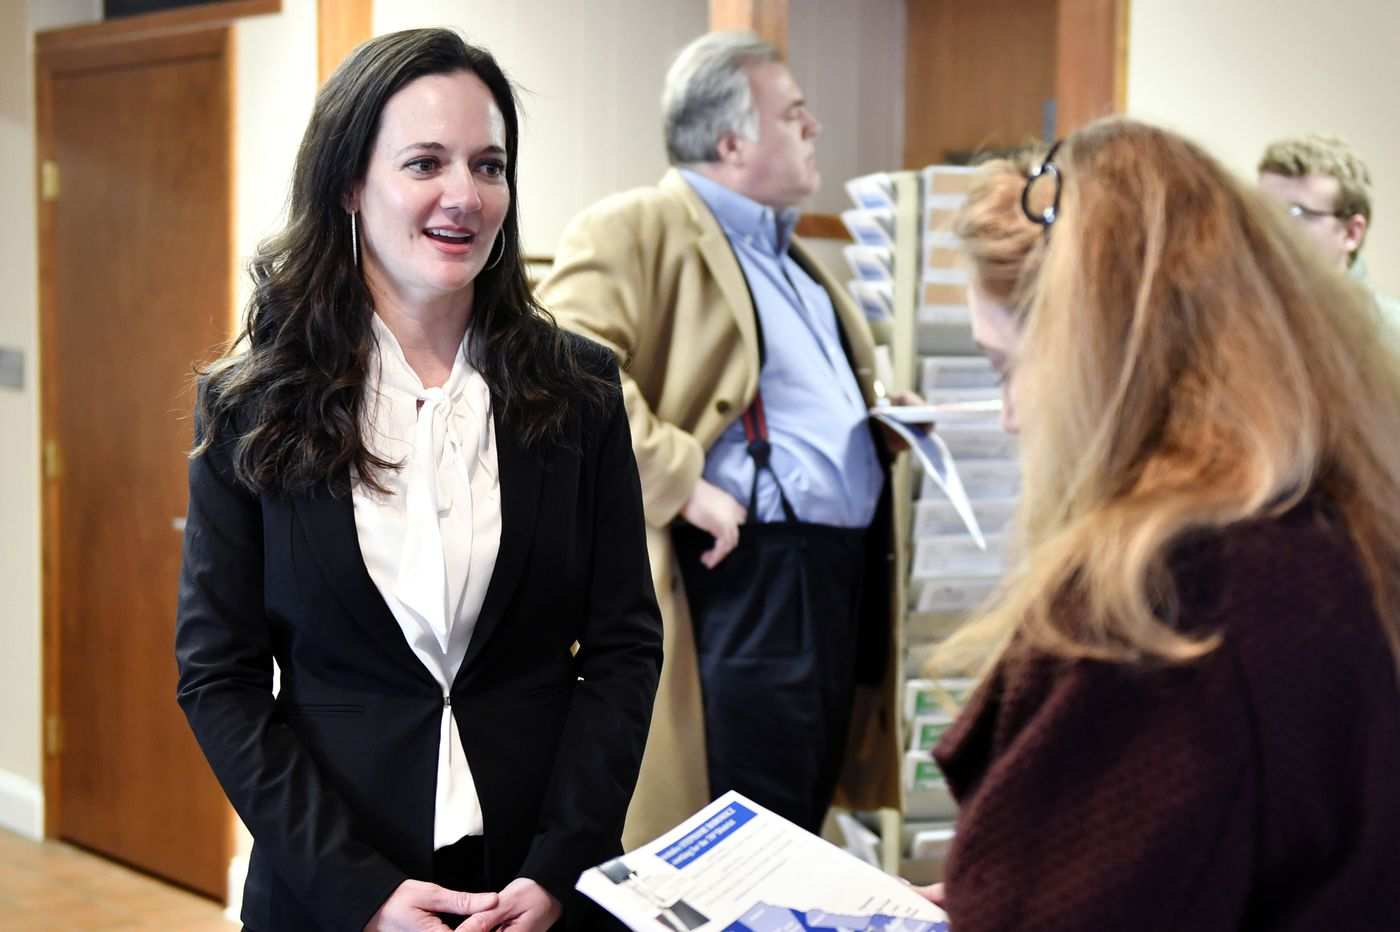 Pa. legislator in midst of swearing-in controversy: 'I prayed as I always did'